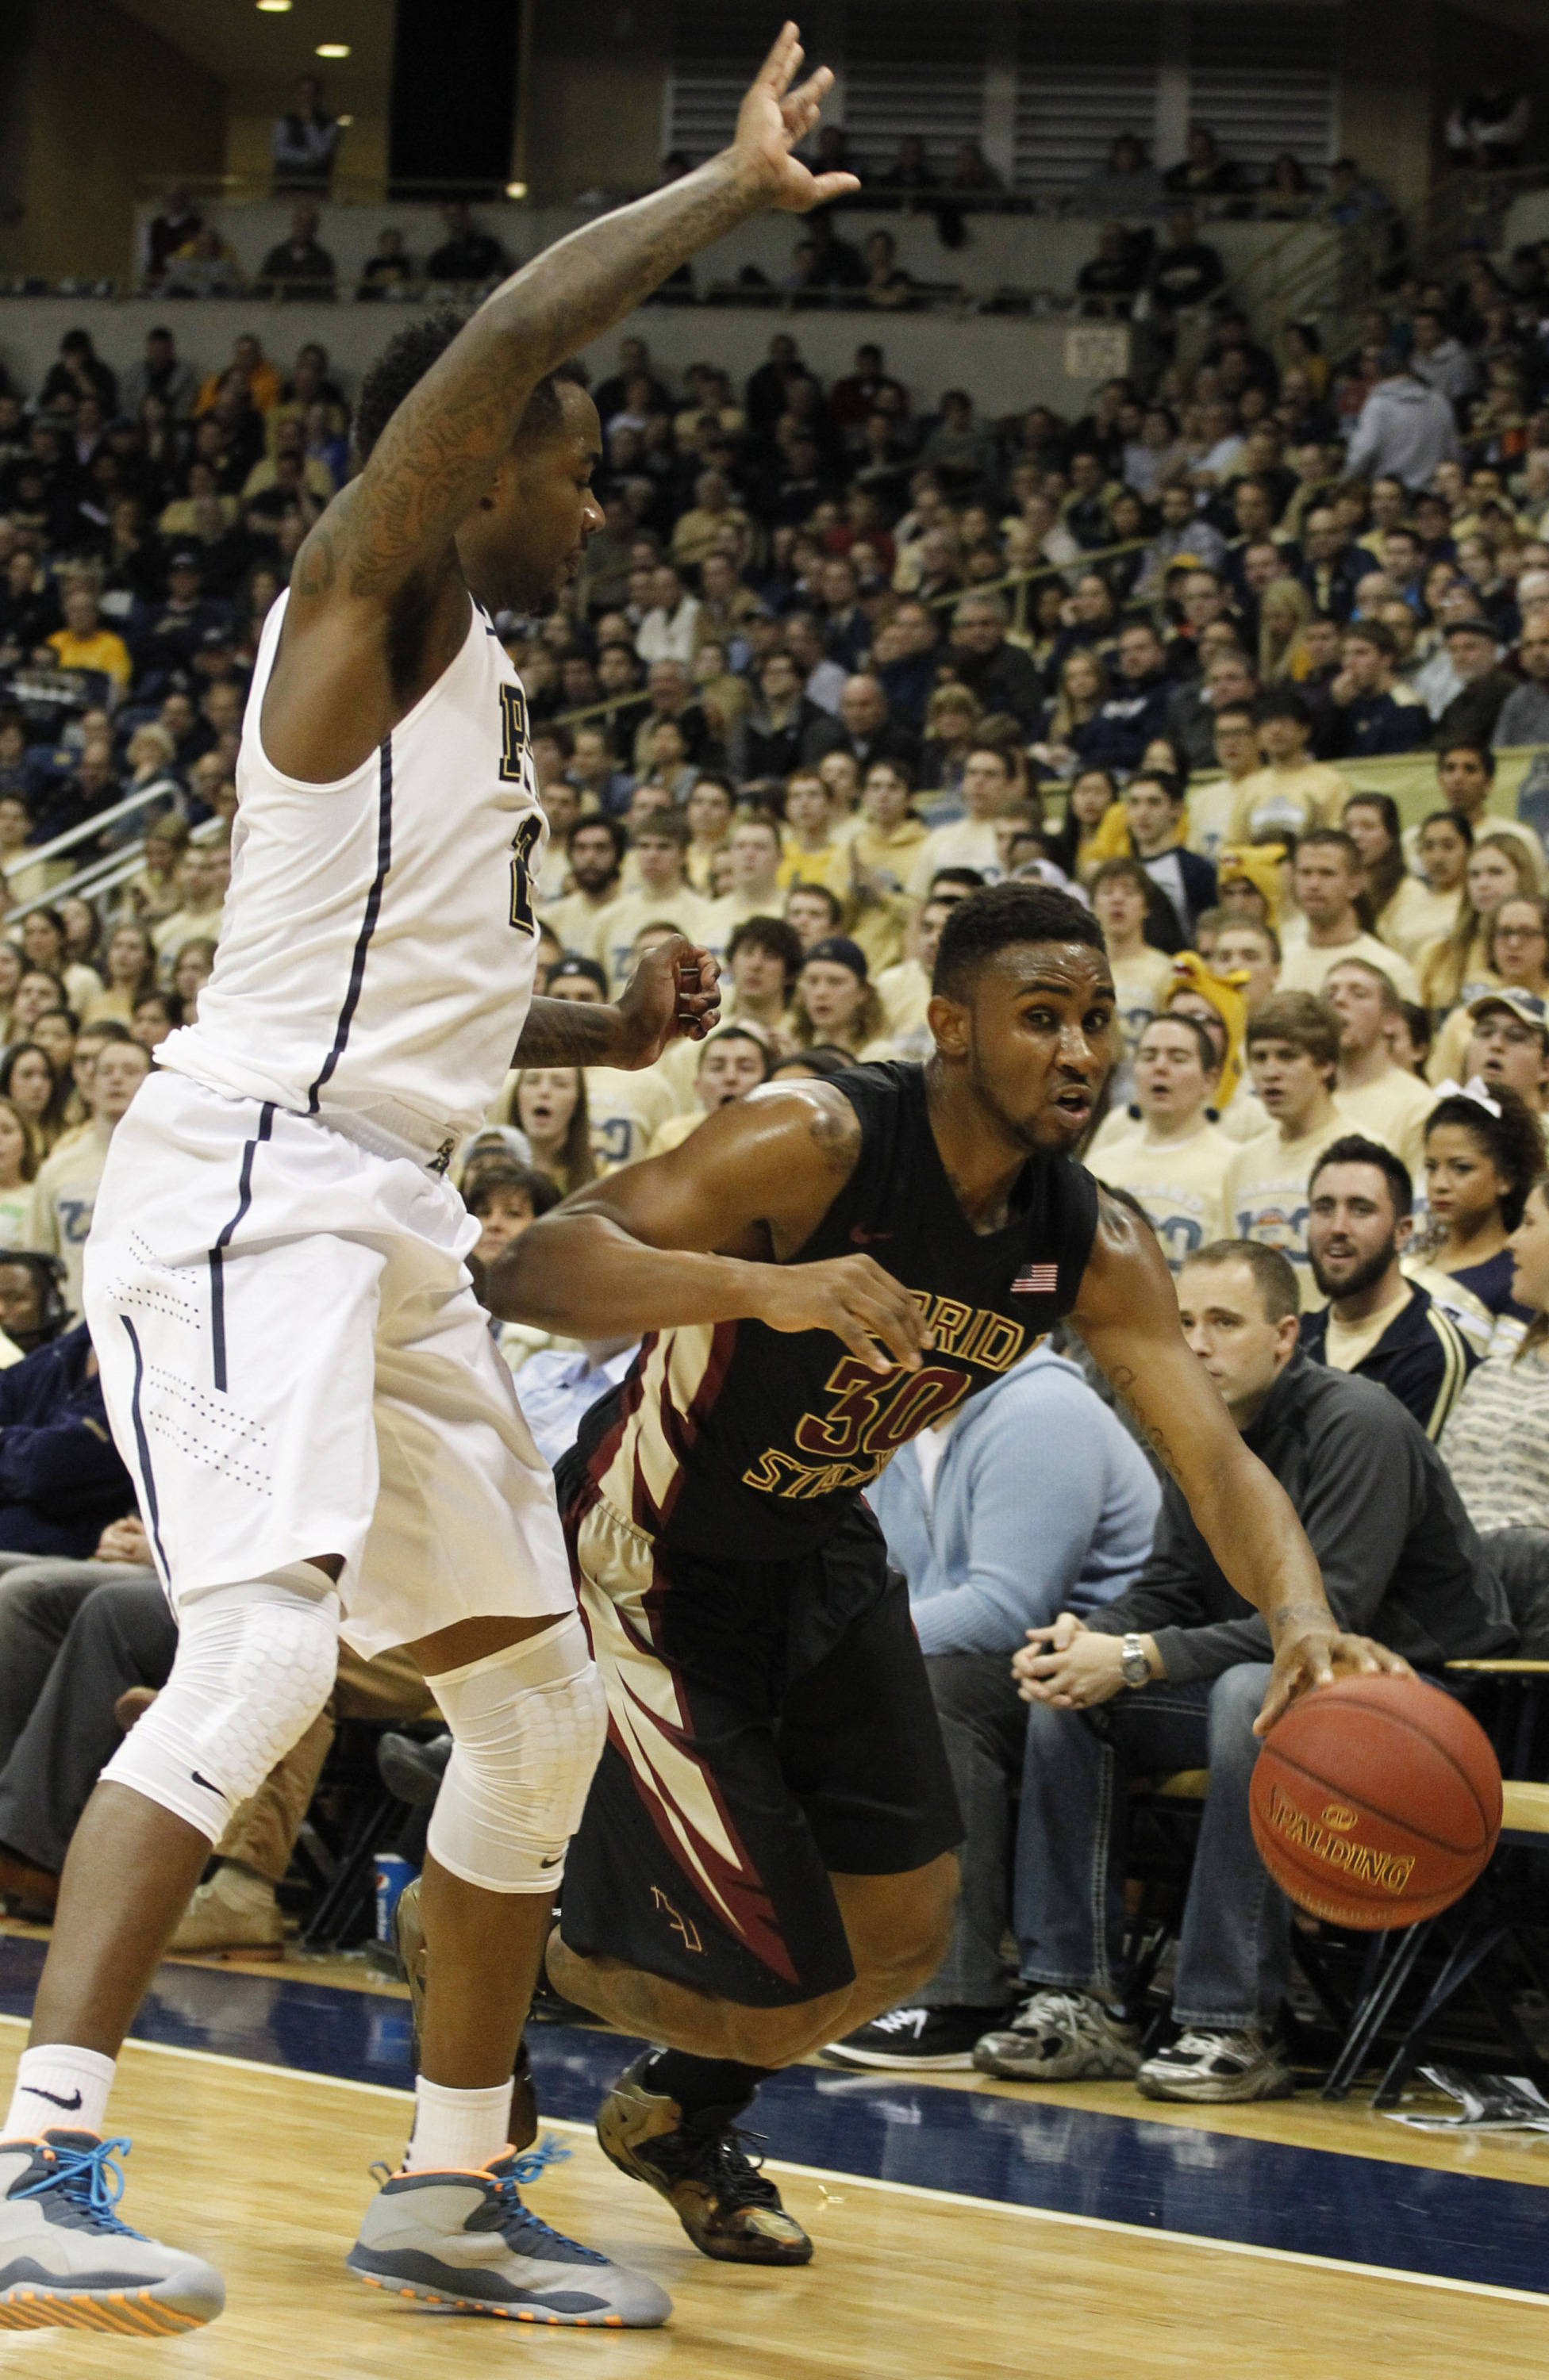 Florida State Seminoles guard Ian Miller (30) dribbles the ball as Pittsburgh Panthers forward Michael Young (L) defends. (Charles LeClaire-USA TODAY Sports)